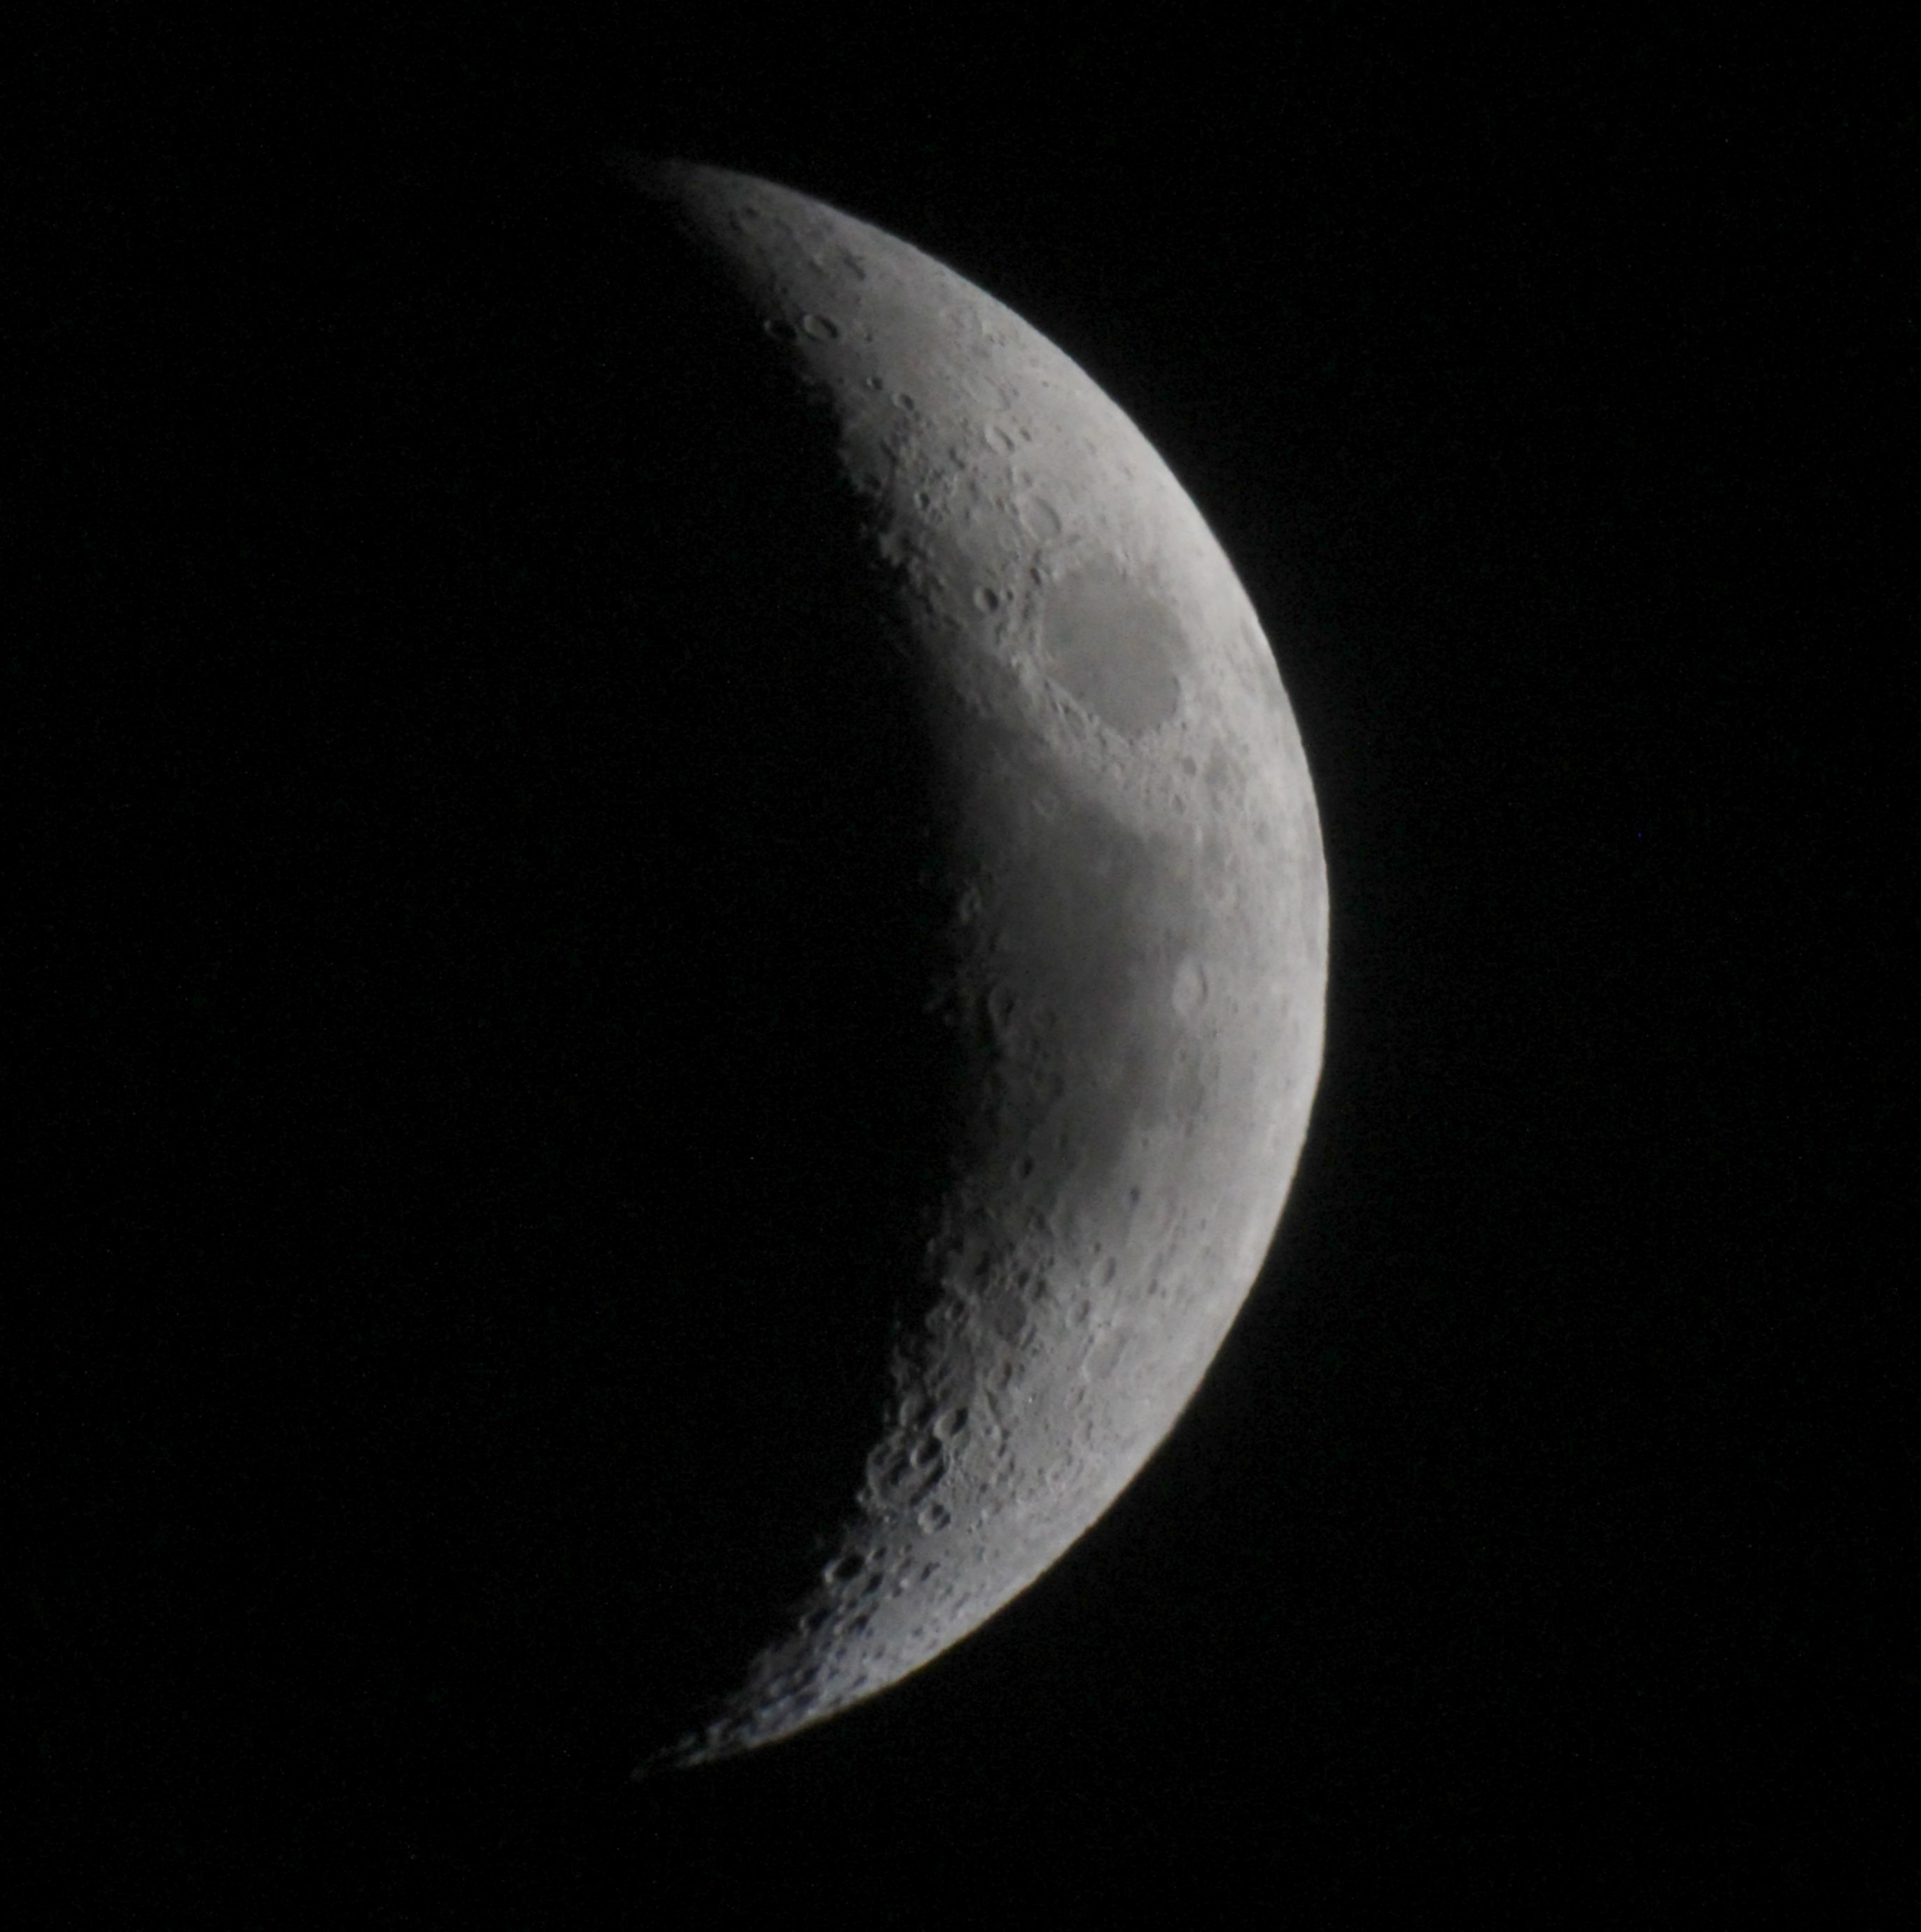 WAXING CRESCENT MOON 4 5 DAYS OLDWaxing Gibbous Moon Clipart